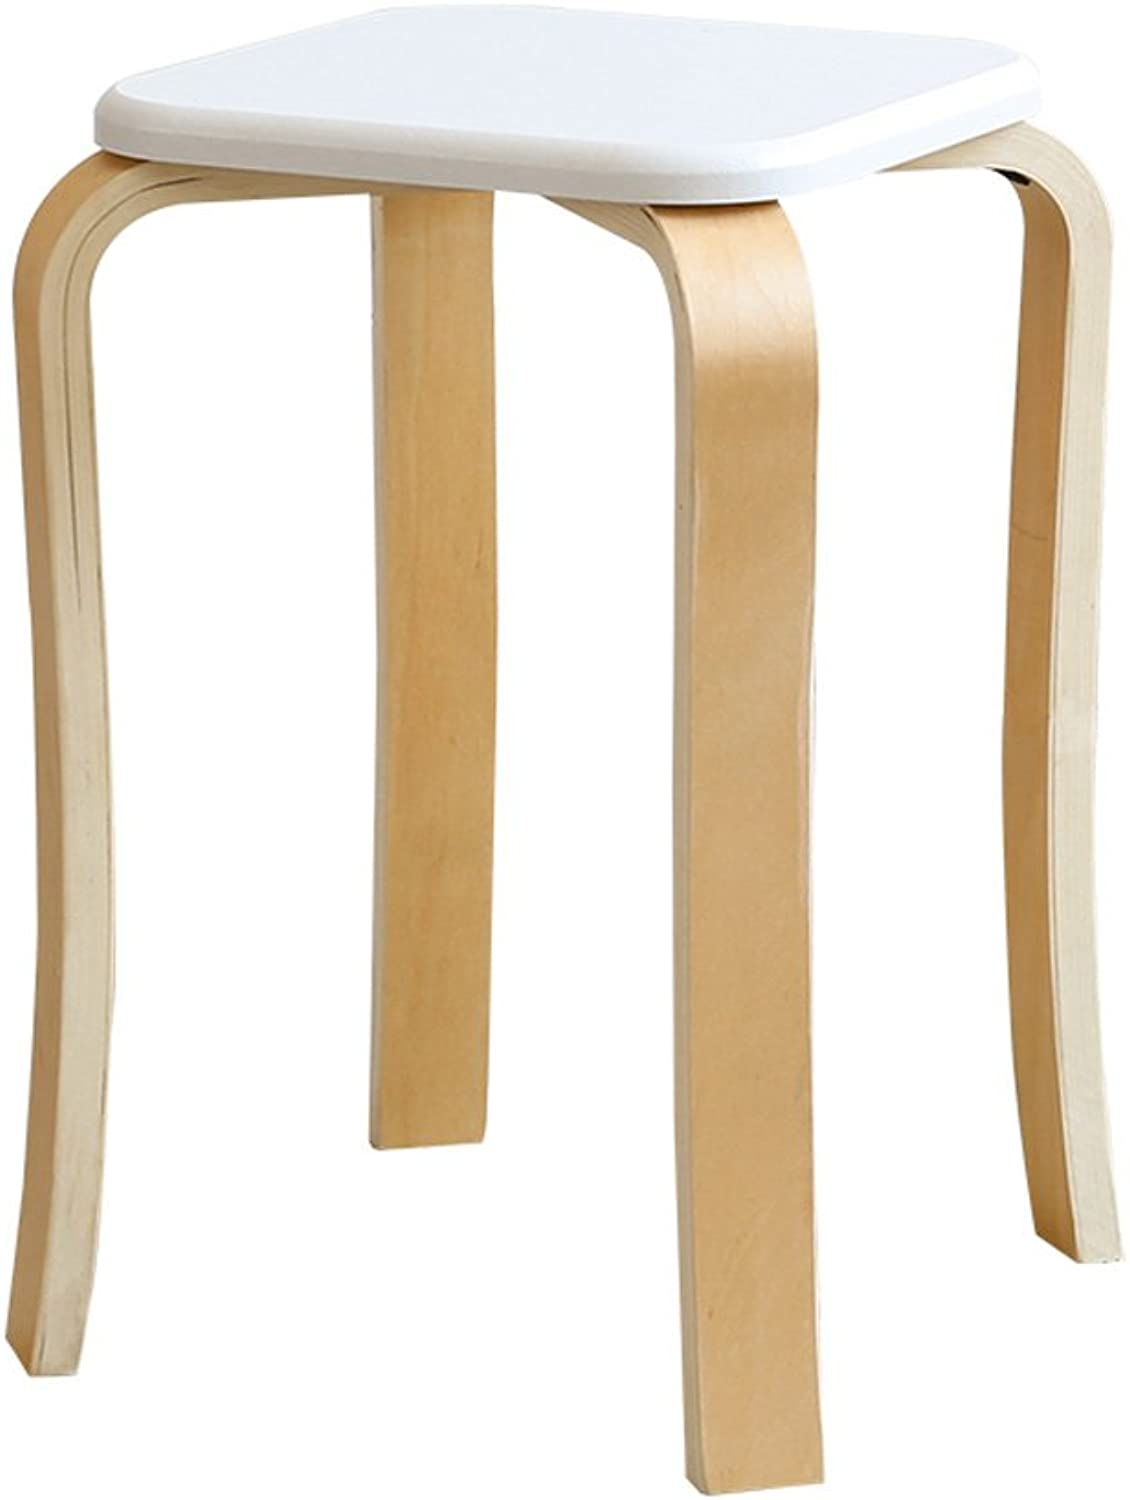 Zcxbhd Stools Stackable Solid Bentwood Stool Chair for Kitchen Office Parties Breakfast (color   F)